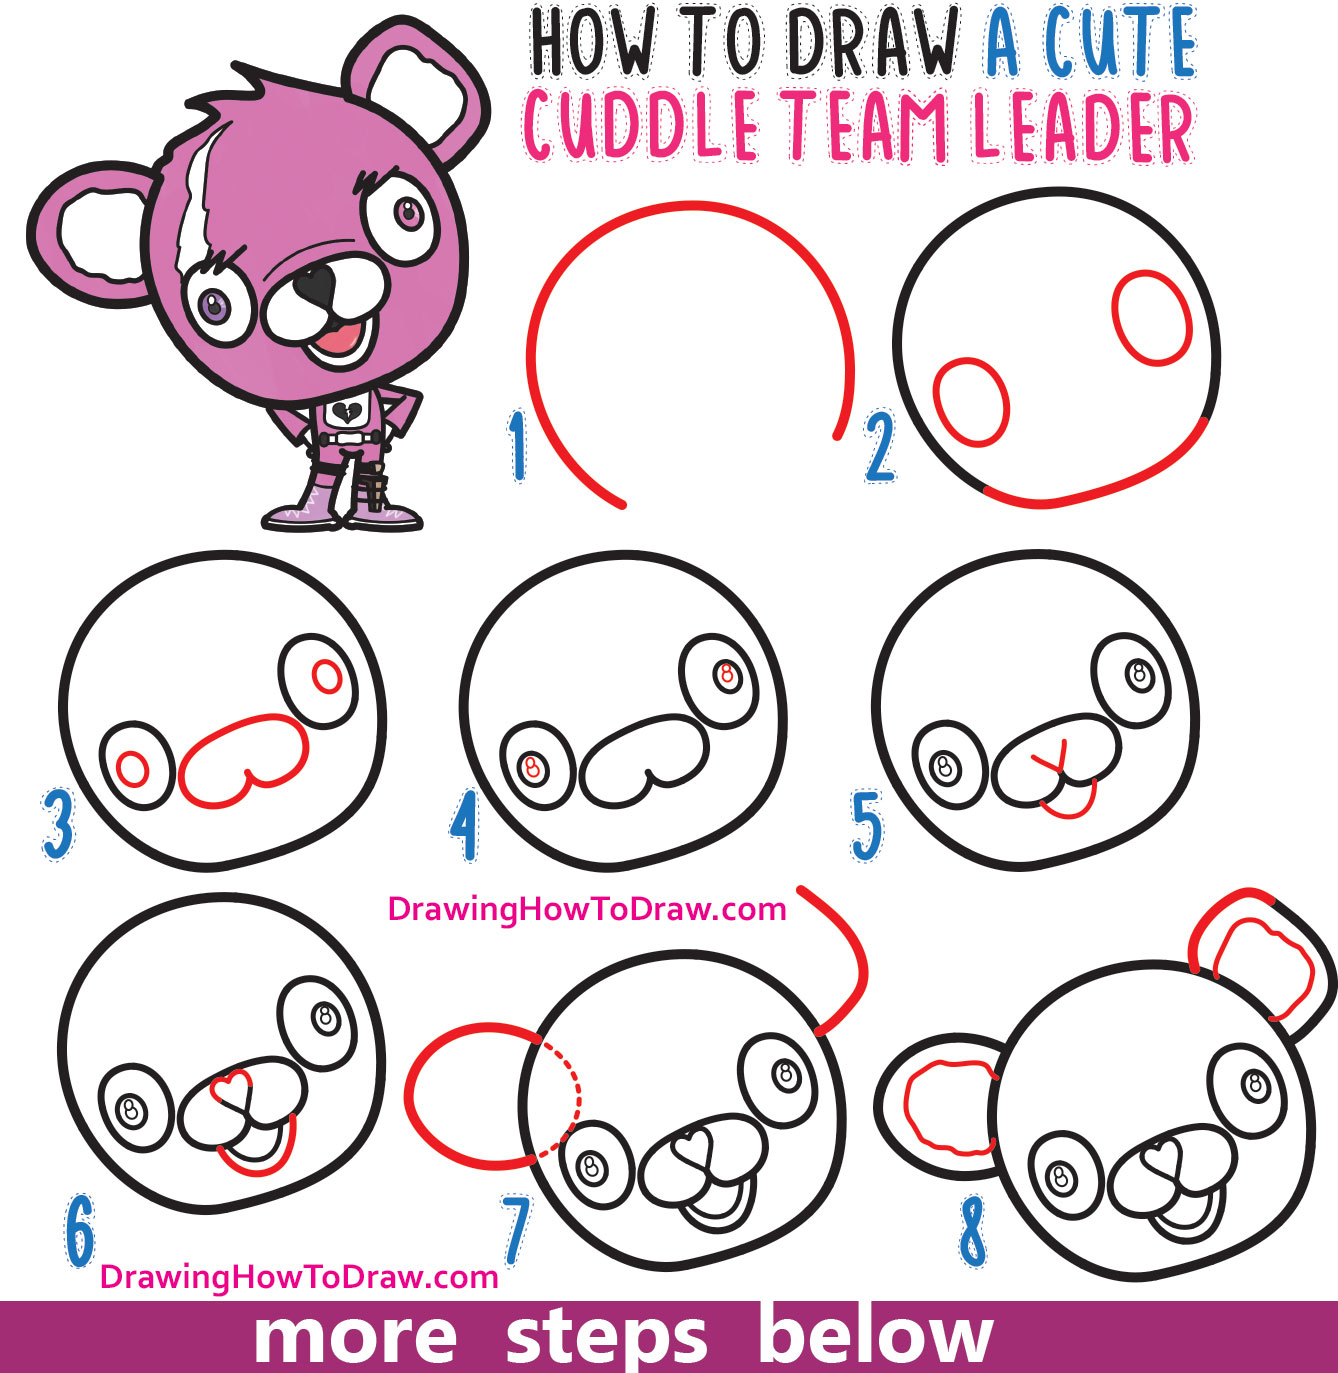 How to Draw a Cute Cuddle Team Leader from Fortnite - Easy Step by Step Drawing Tutorial for Beginners